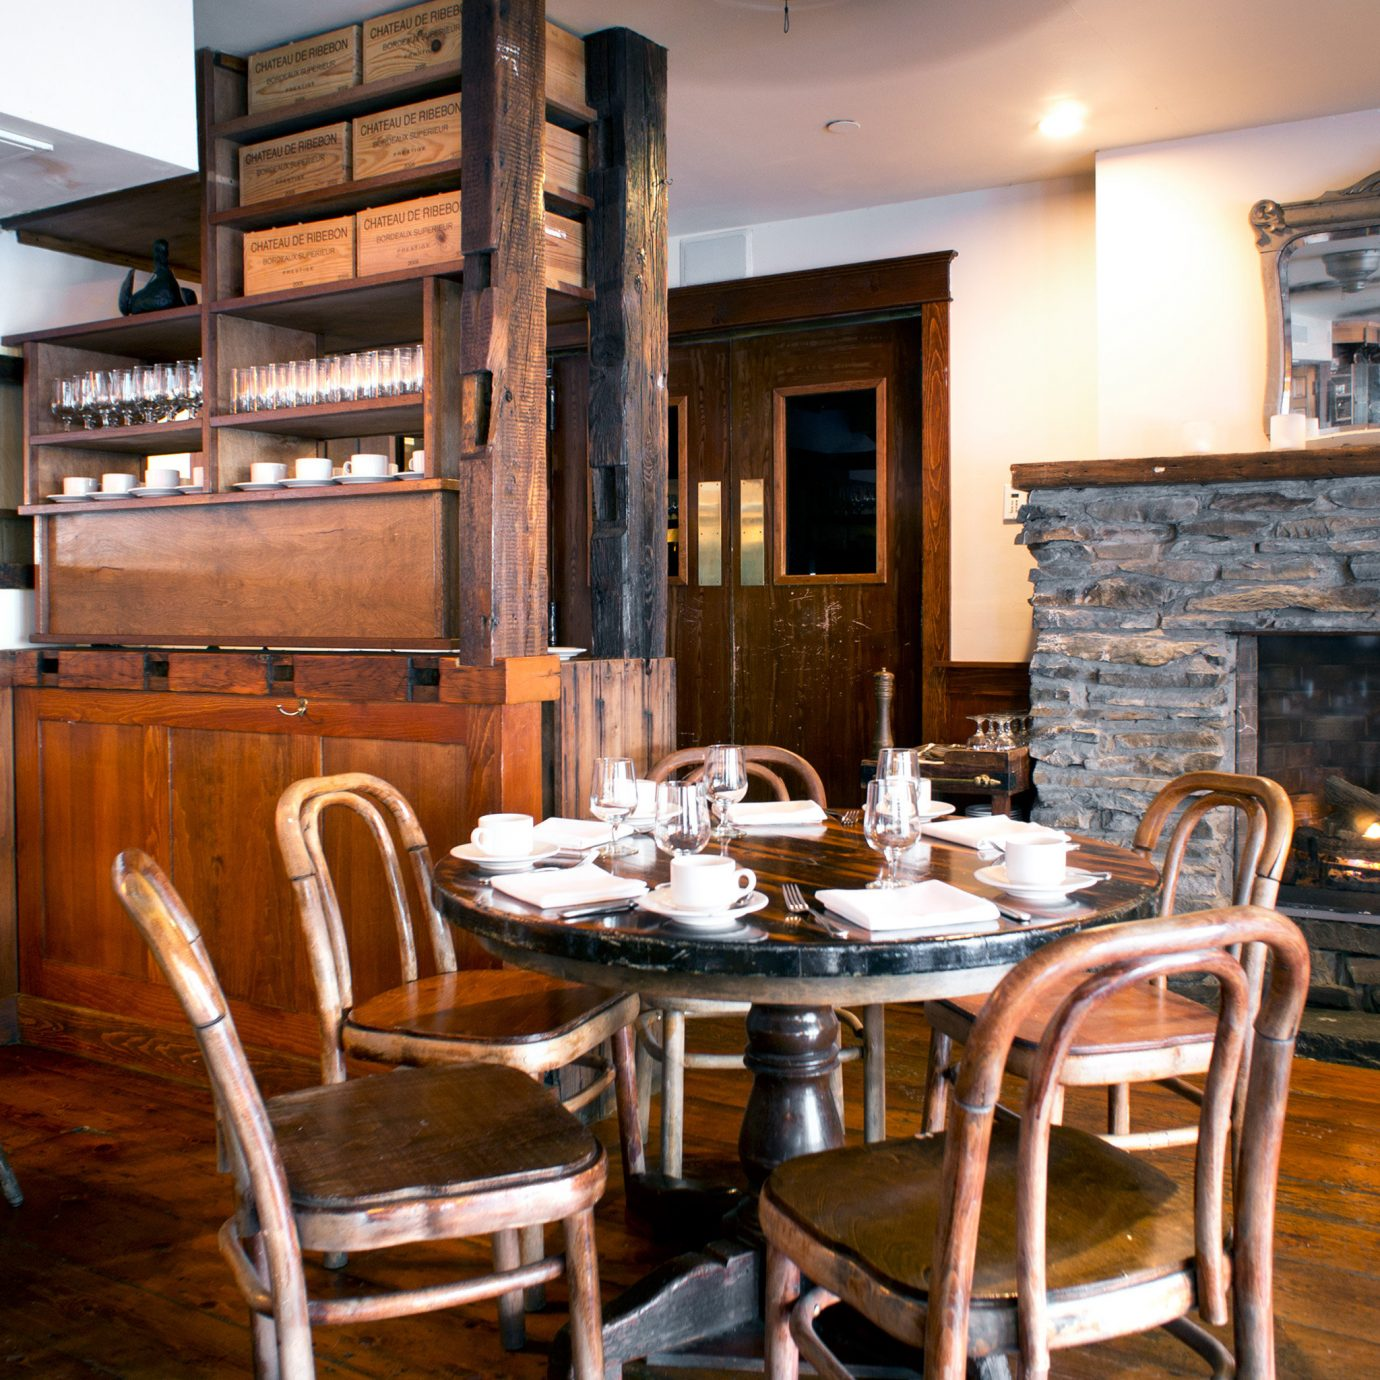 Country Dining Eat Inn chair property home Kitchen living room cottage farmhouse dining table